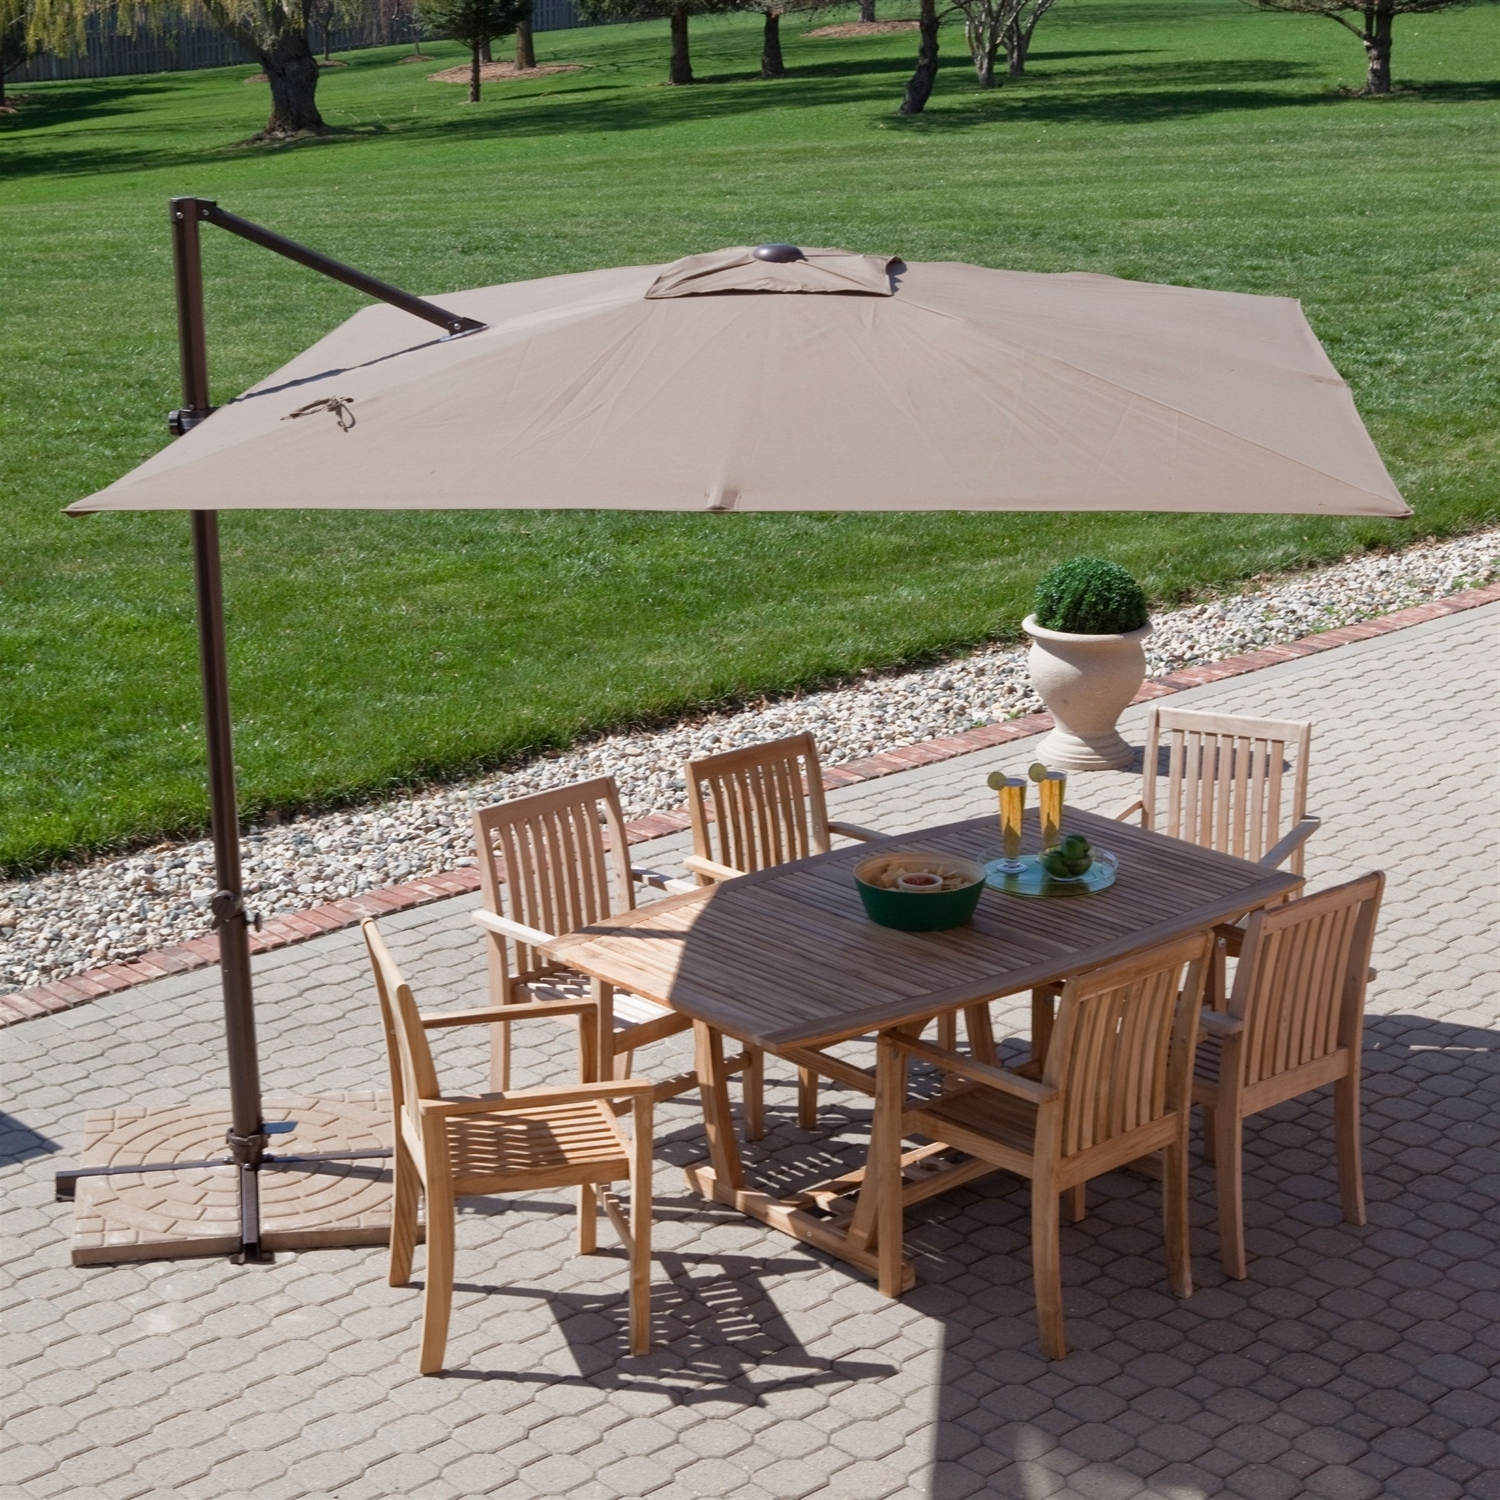 Current Offset Rectangular Patio Umbrellas With Regard To A Guide To Buying Offset Patio Umbrella – Blogbeen (View 2 of 20)